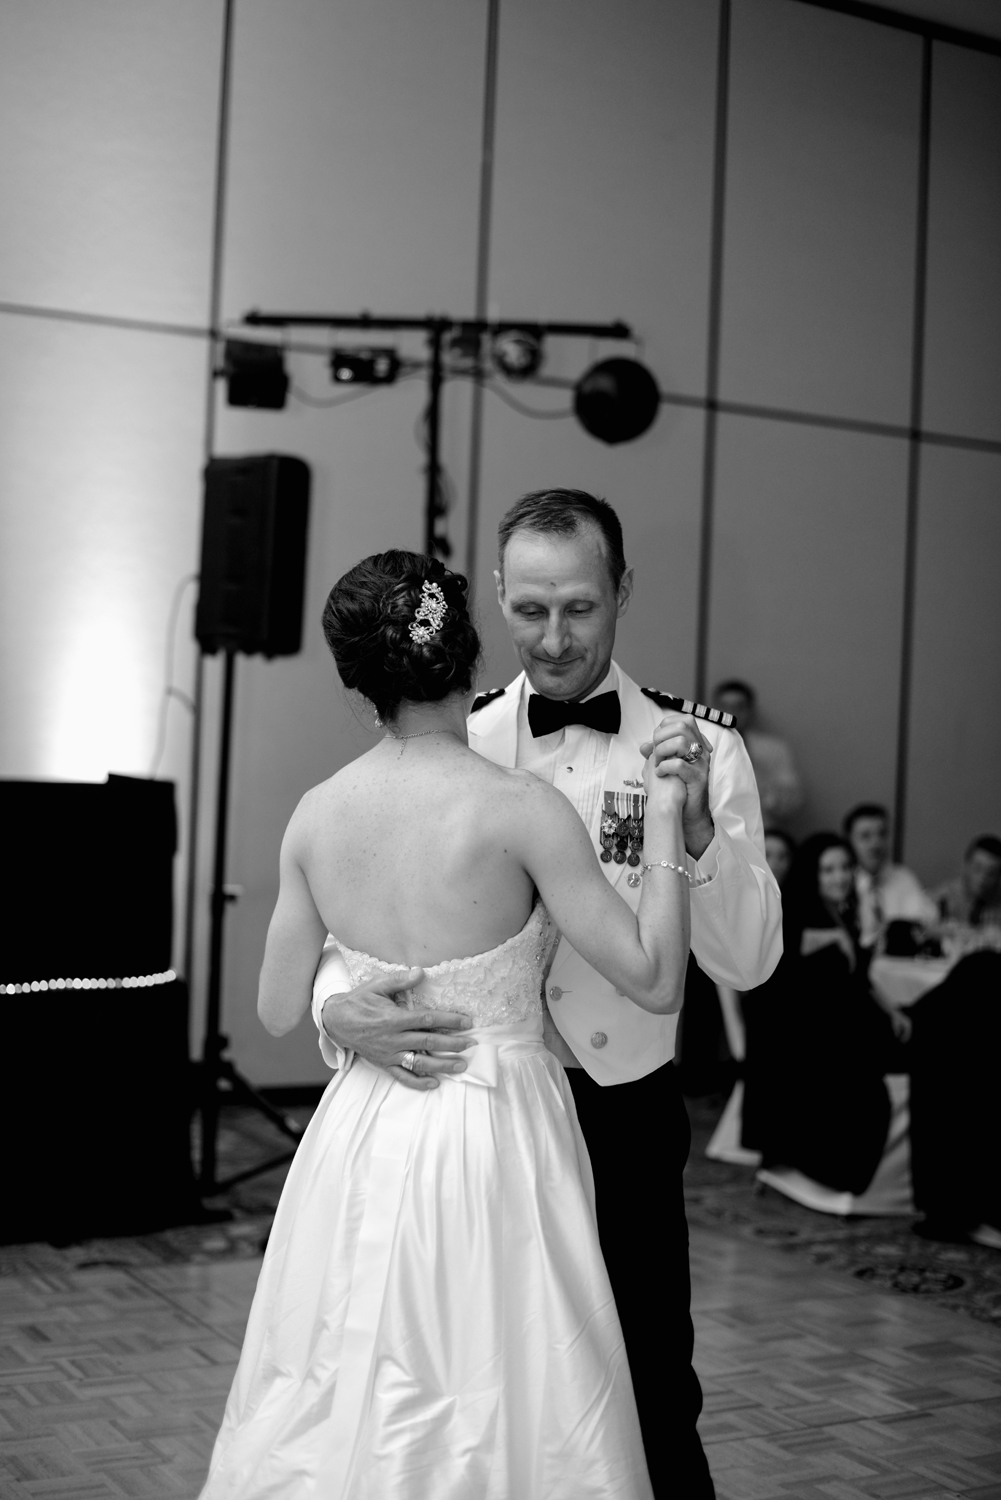 Father/daughter wedding dance |Maria Grace Photography